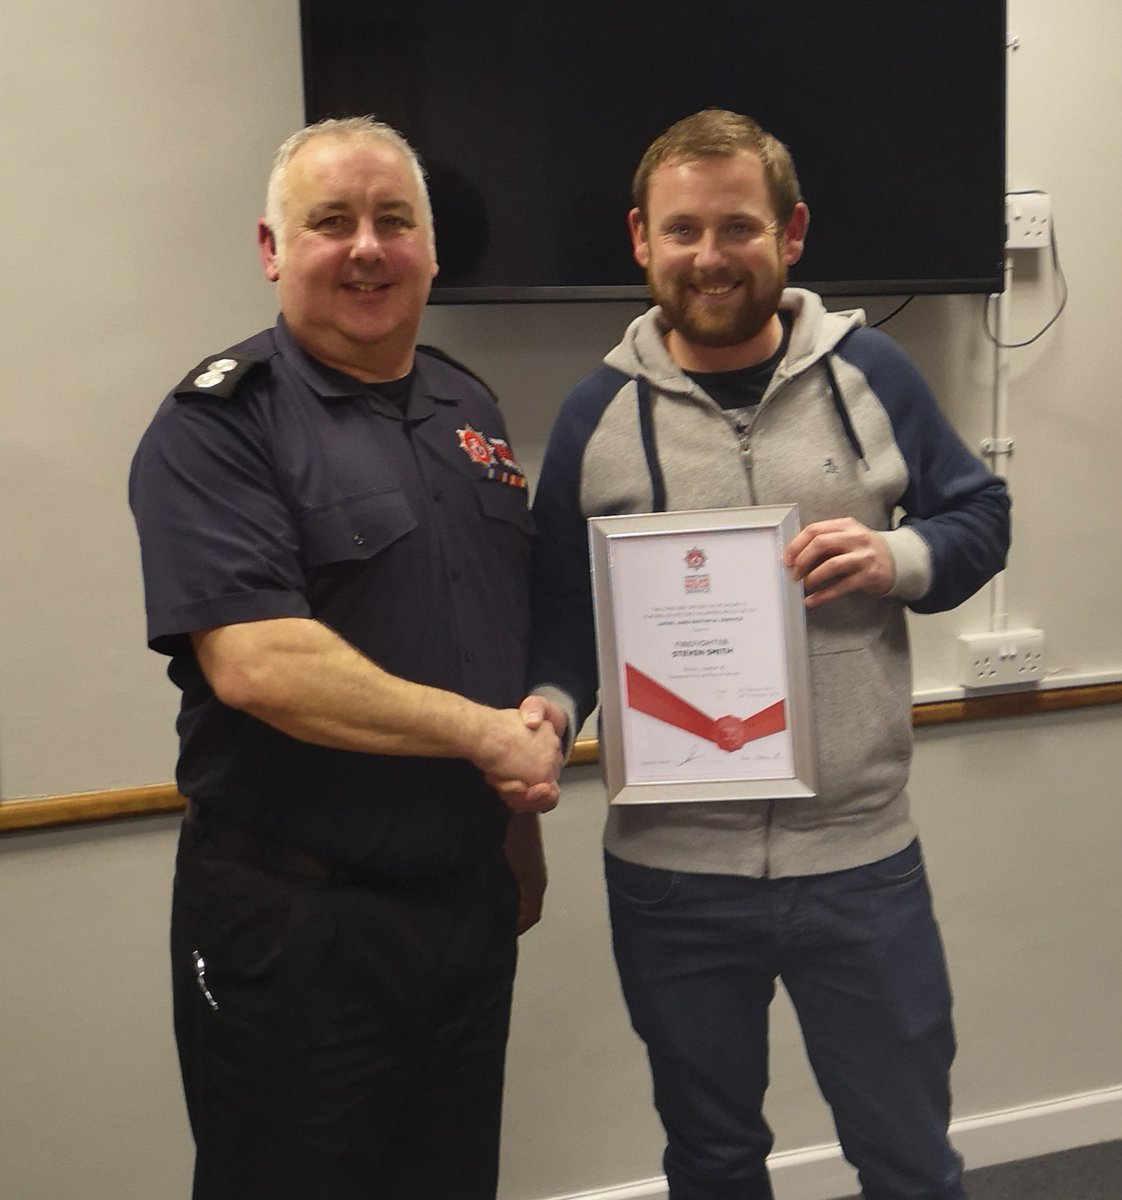 Busy drill night at Droxford this evening with GM Operational Assurance Assessments  - great teamwork from 41 crew as always. And then a sad goodbye to FF @Stevesmith_10 who has moved away so can no longer ride with #TeamDroxford. We&#39;ll miss you Steve, good luck !<br>http://pic.twitter.com/Kcr4fFfPid